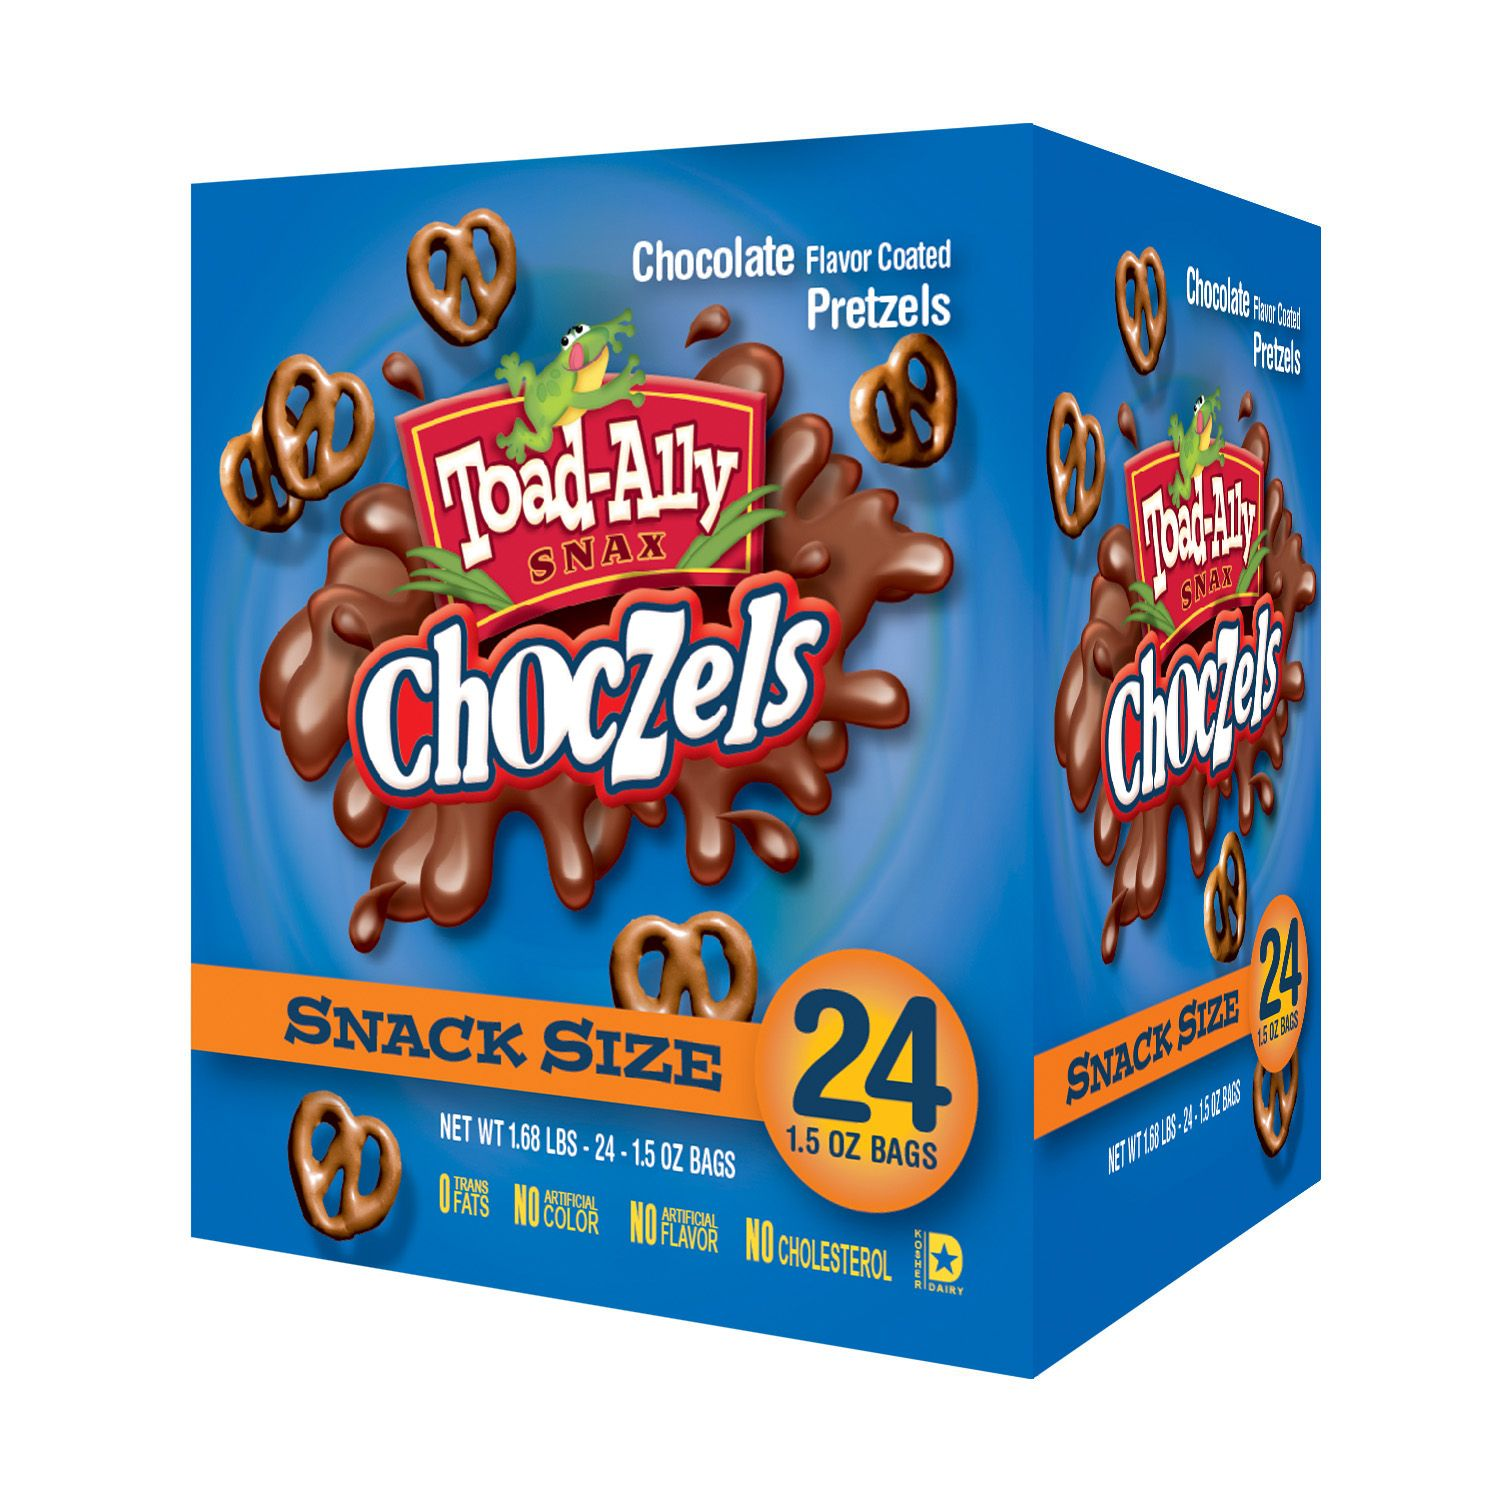 Choczels Box Design For Toad Ally Snax